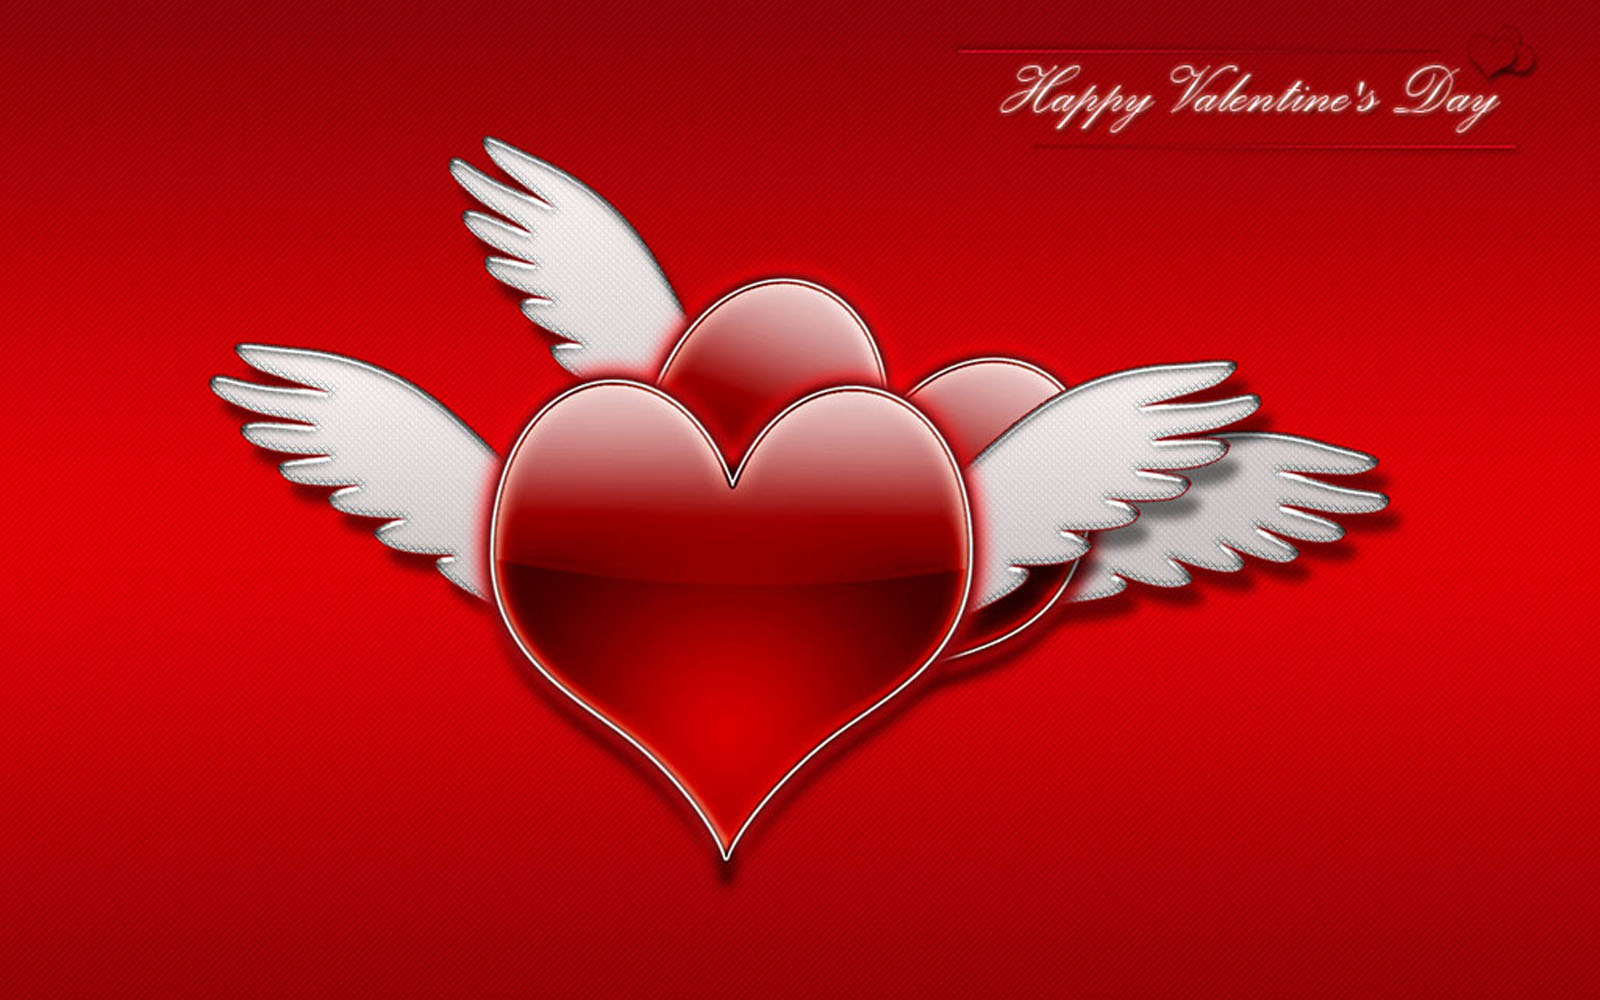 Flying Hearts Wallpapers Blog Art Designs